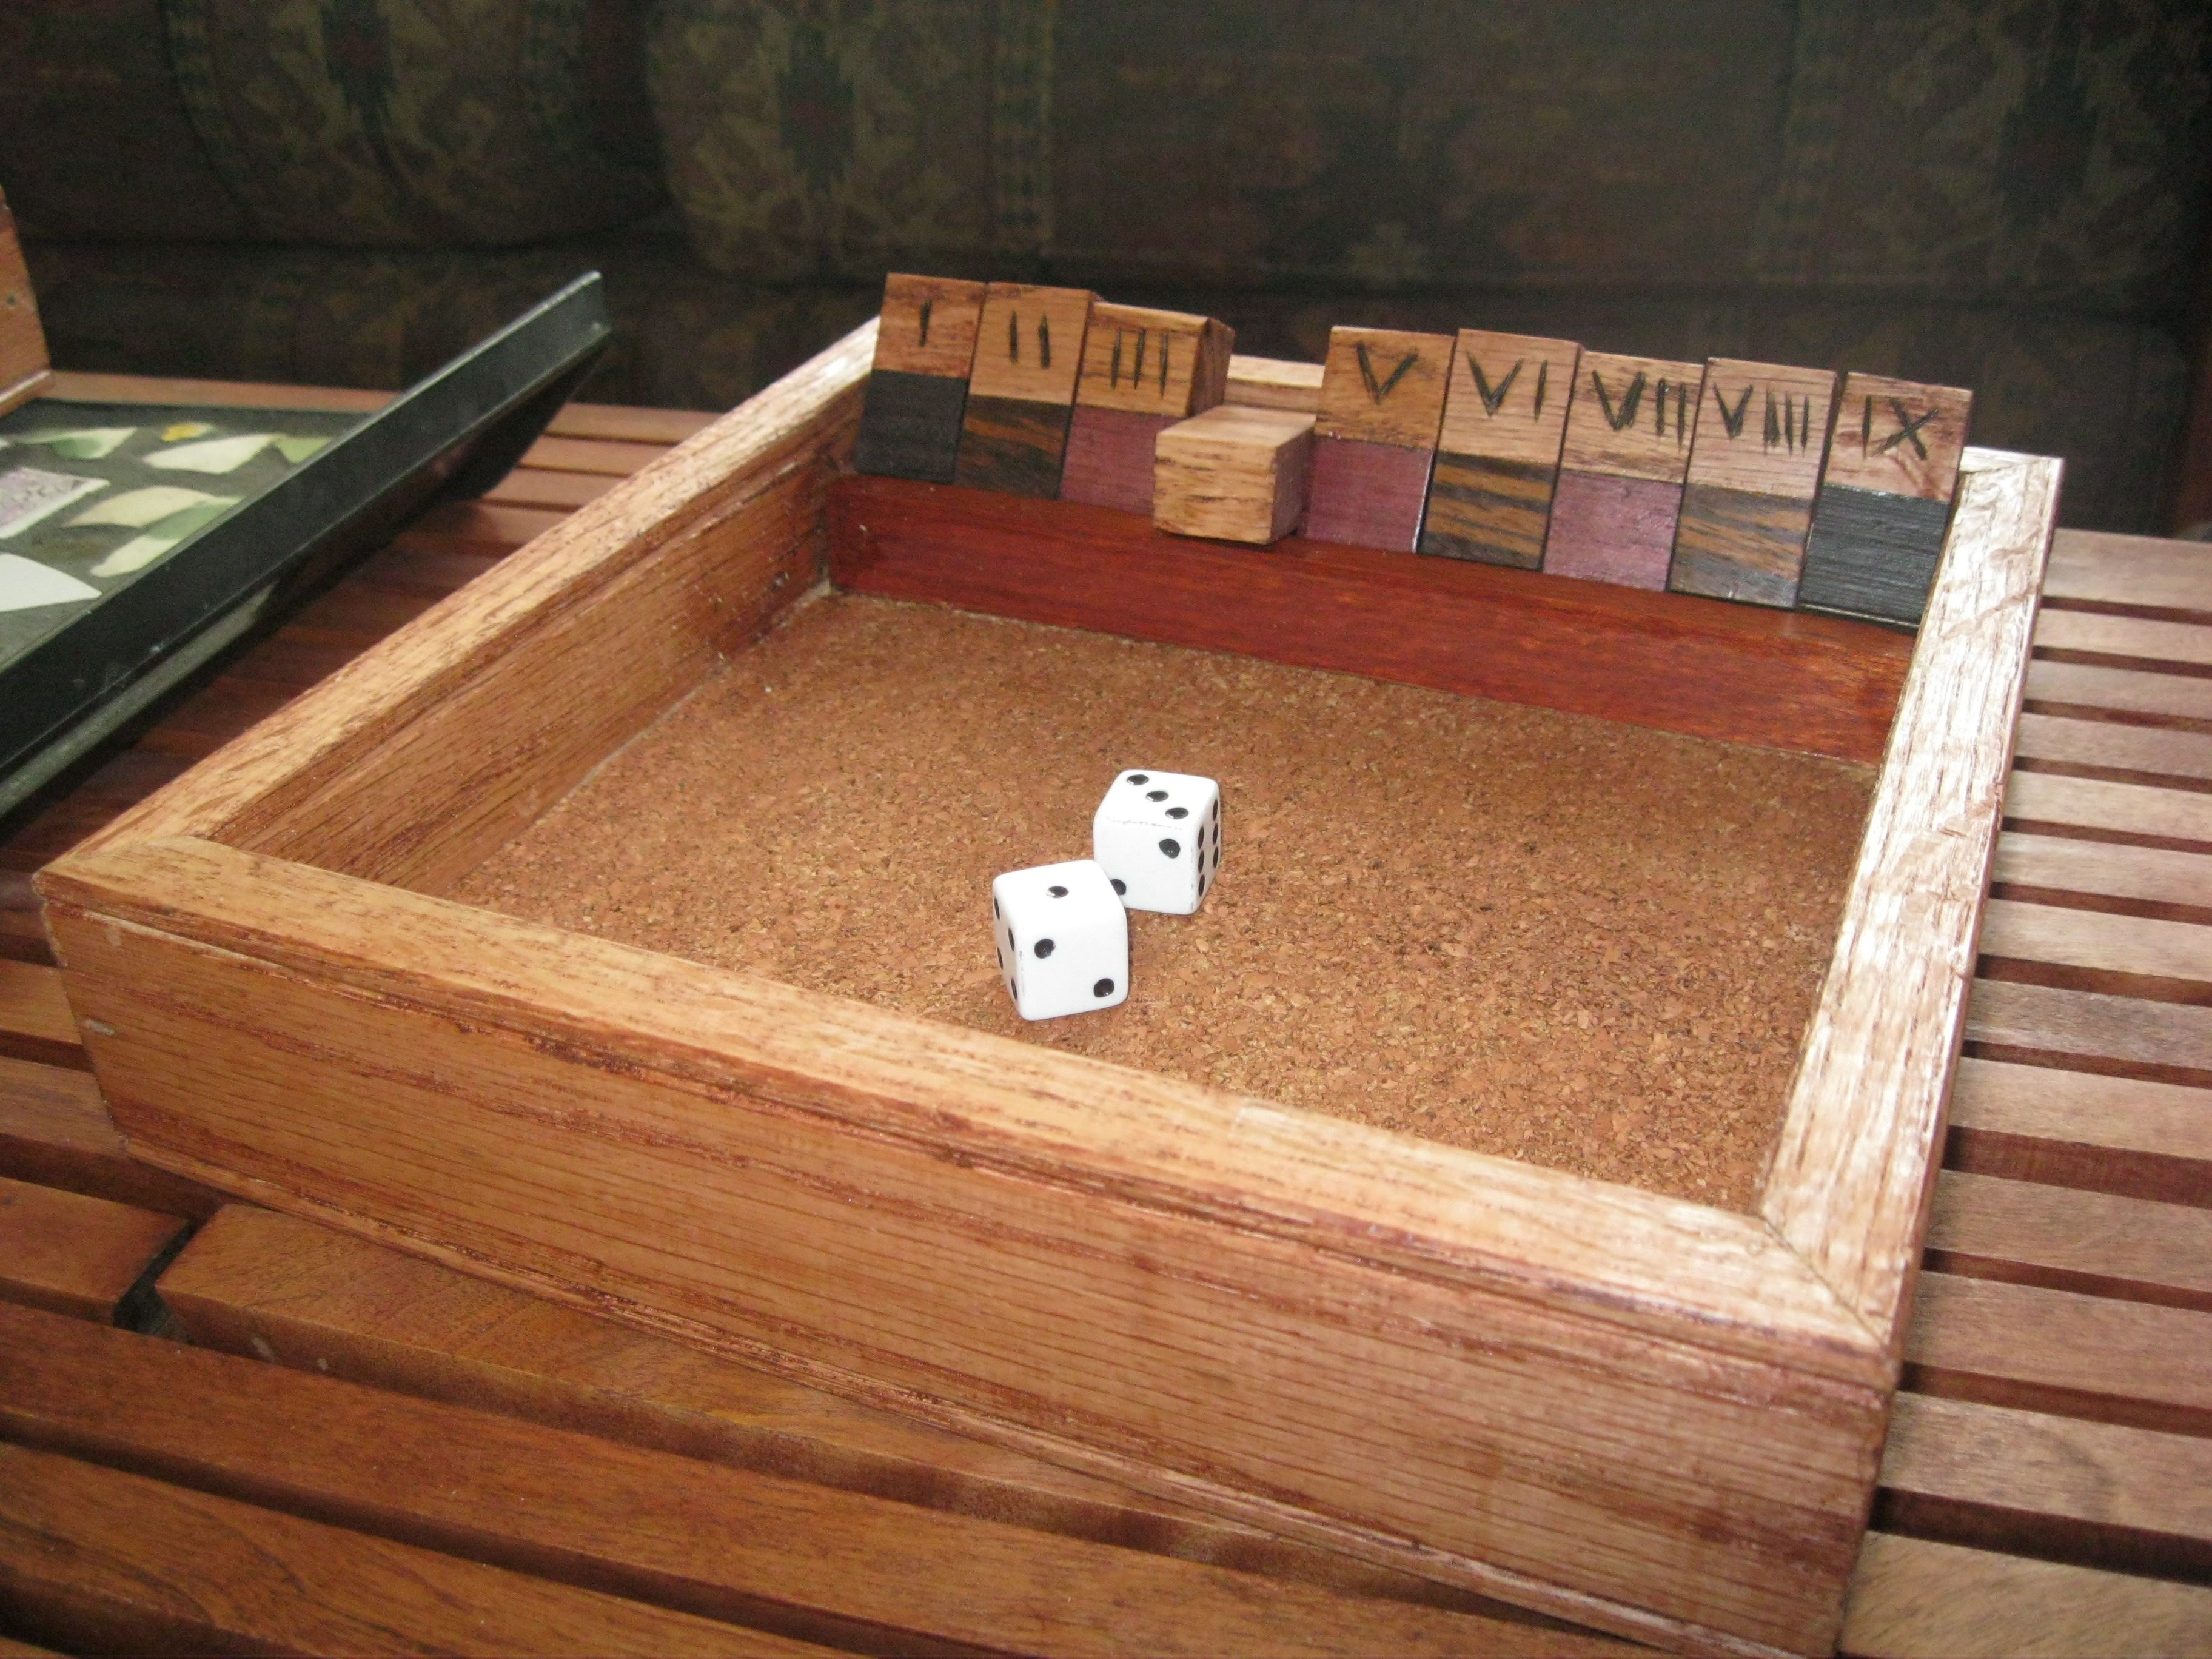 woodworking shut the box game. fun simple game easy woodworking